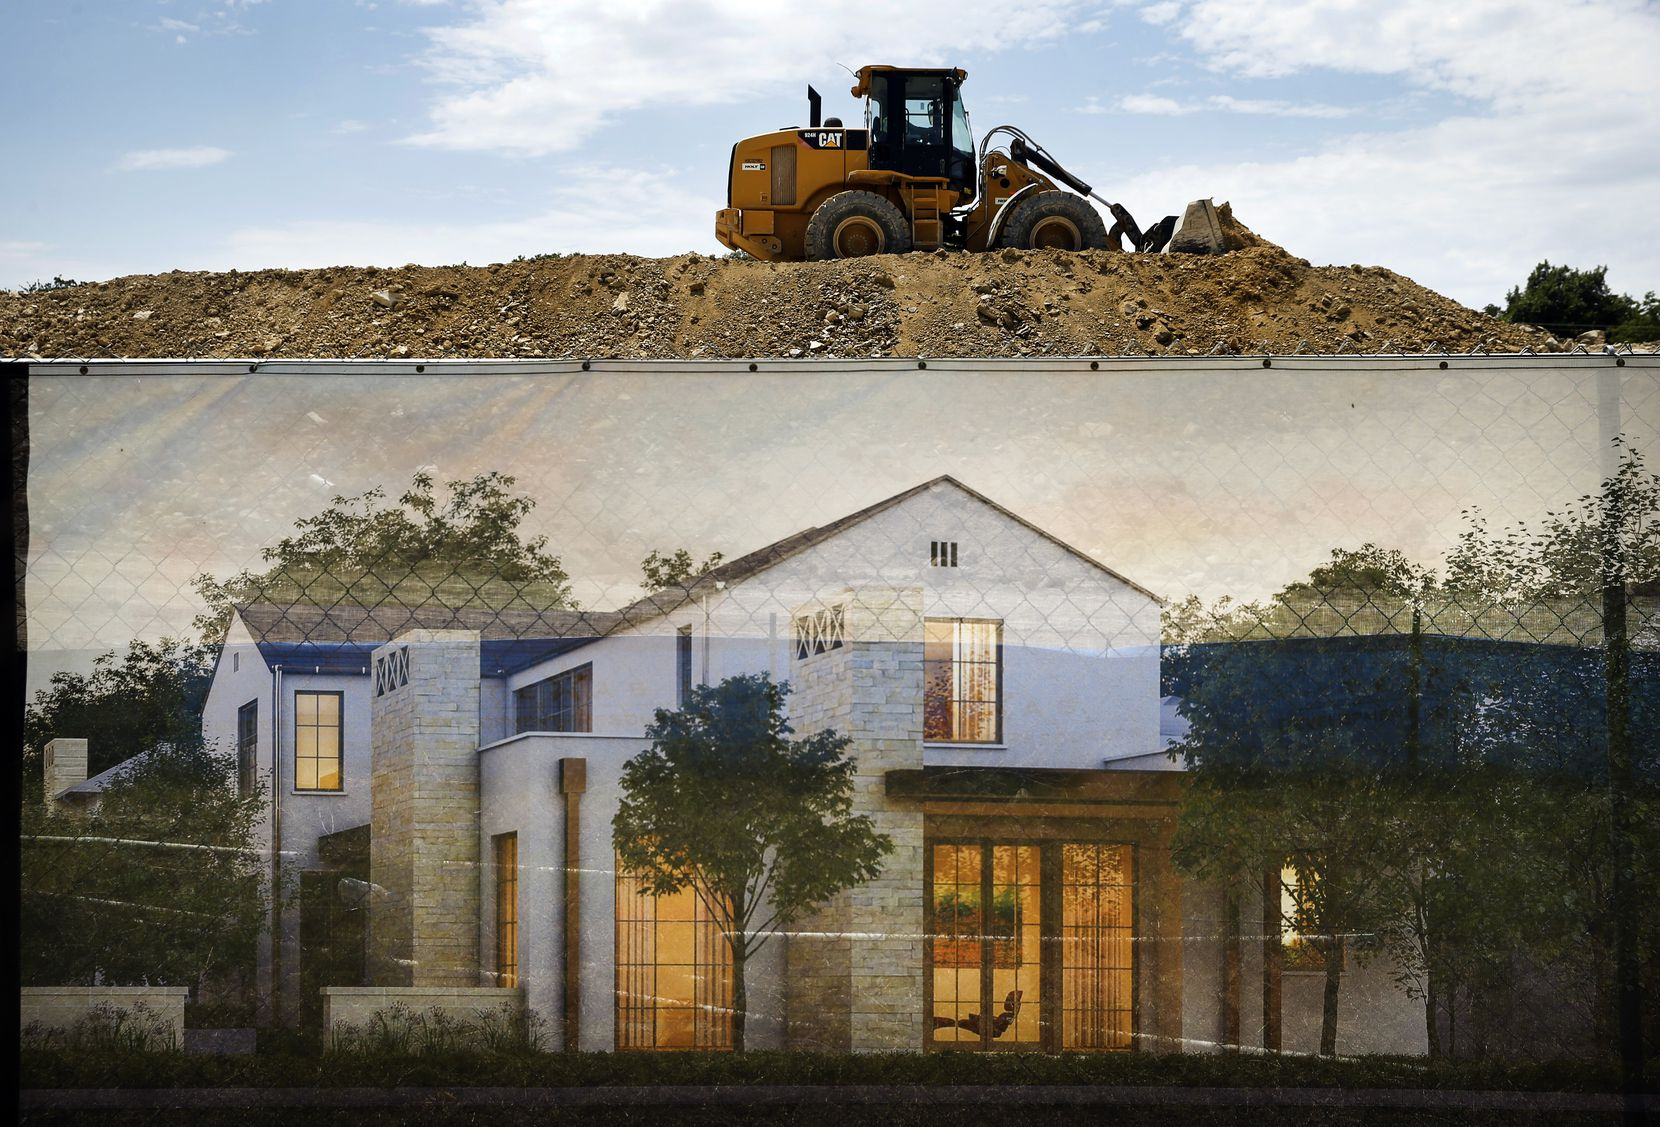 Construction is underway on the new gated community on Walnut Hill Lane just west of U.S. 75 in Dallas on Wednesday.